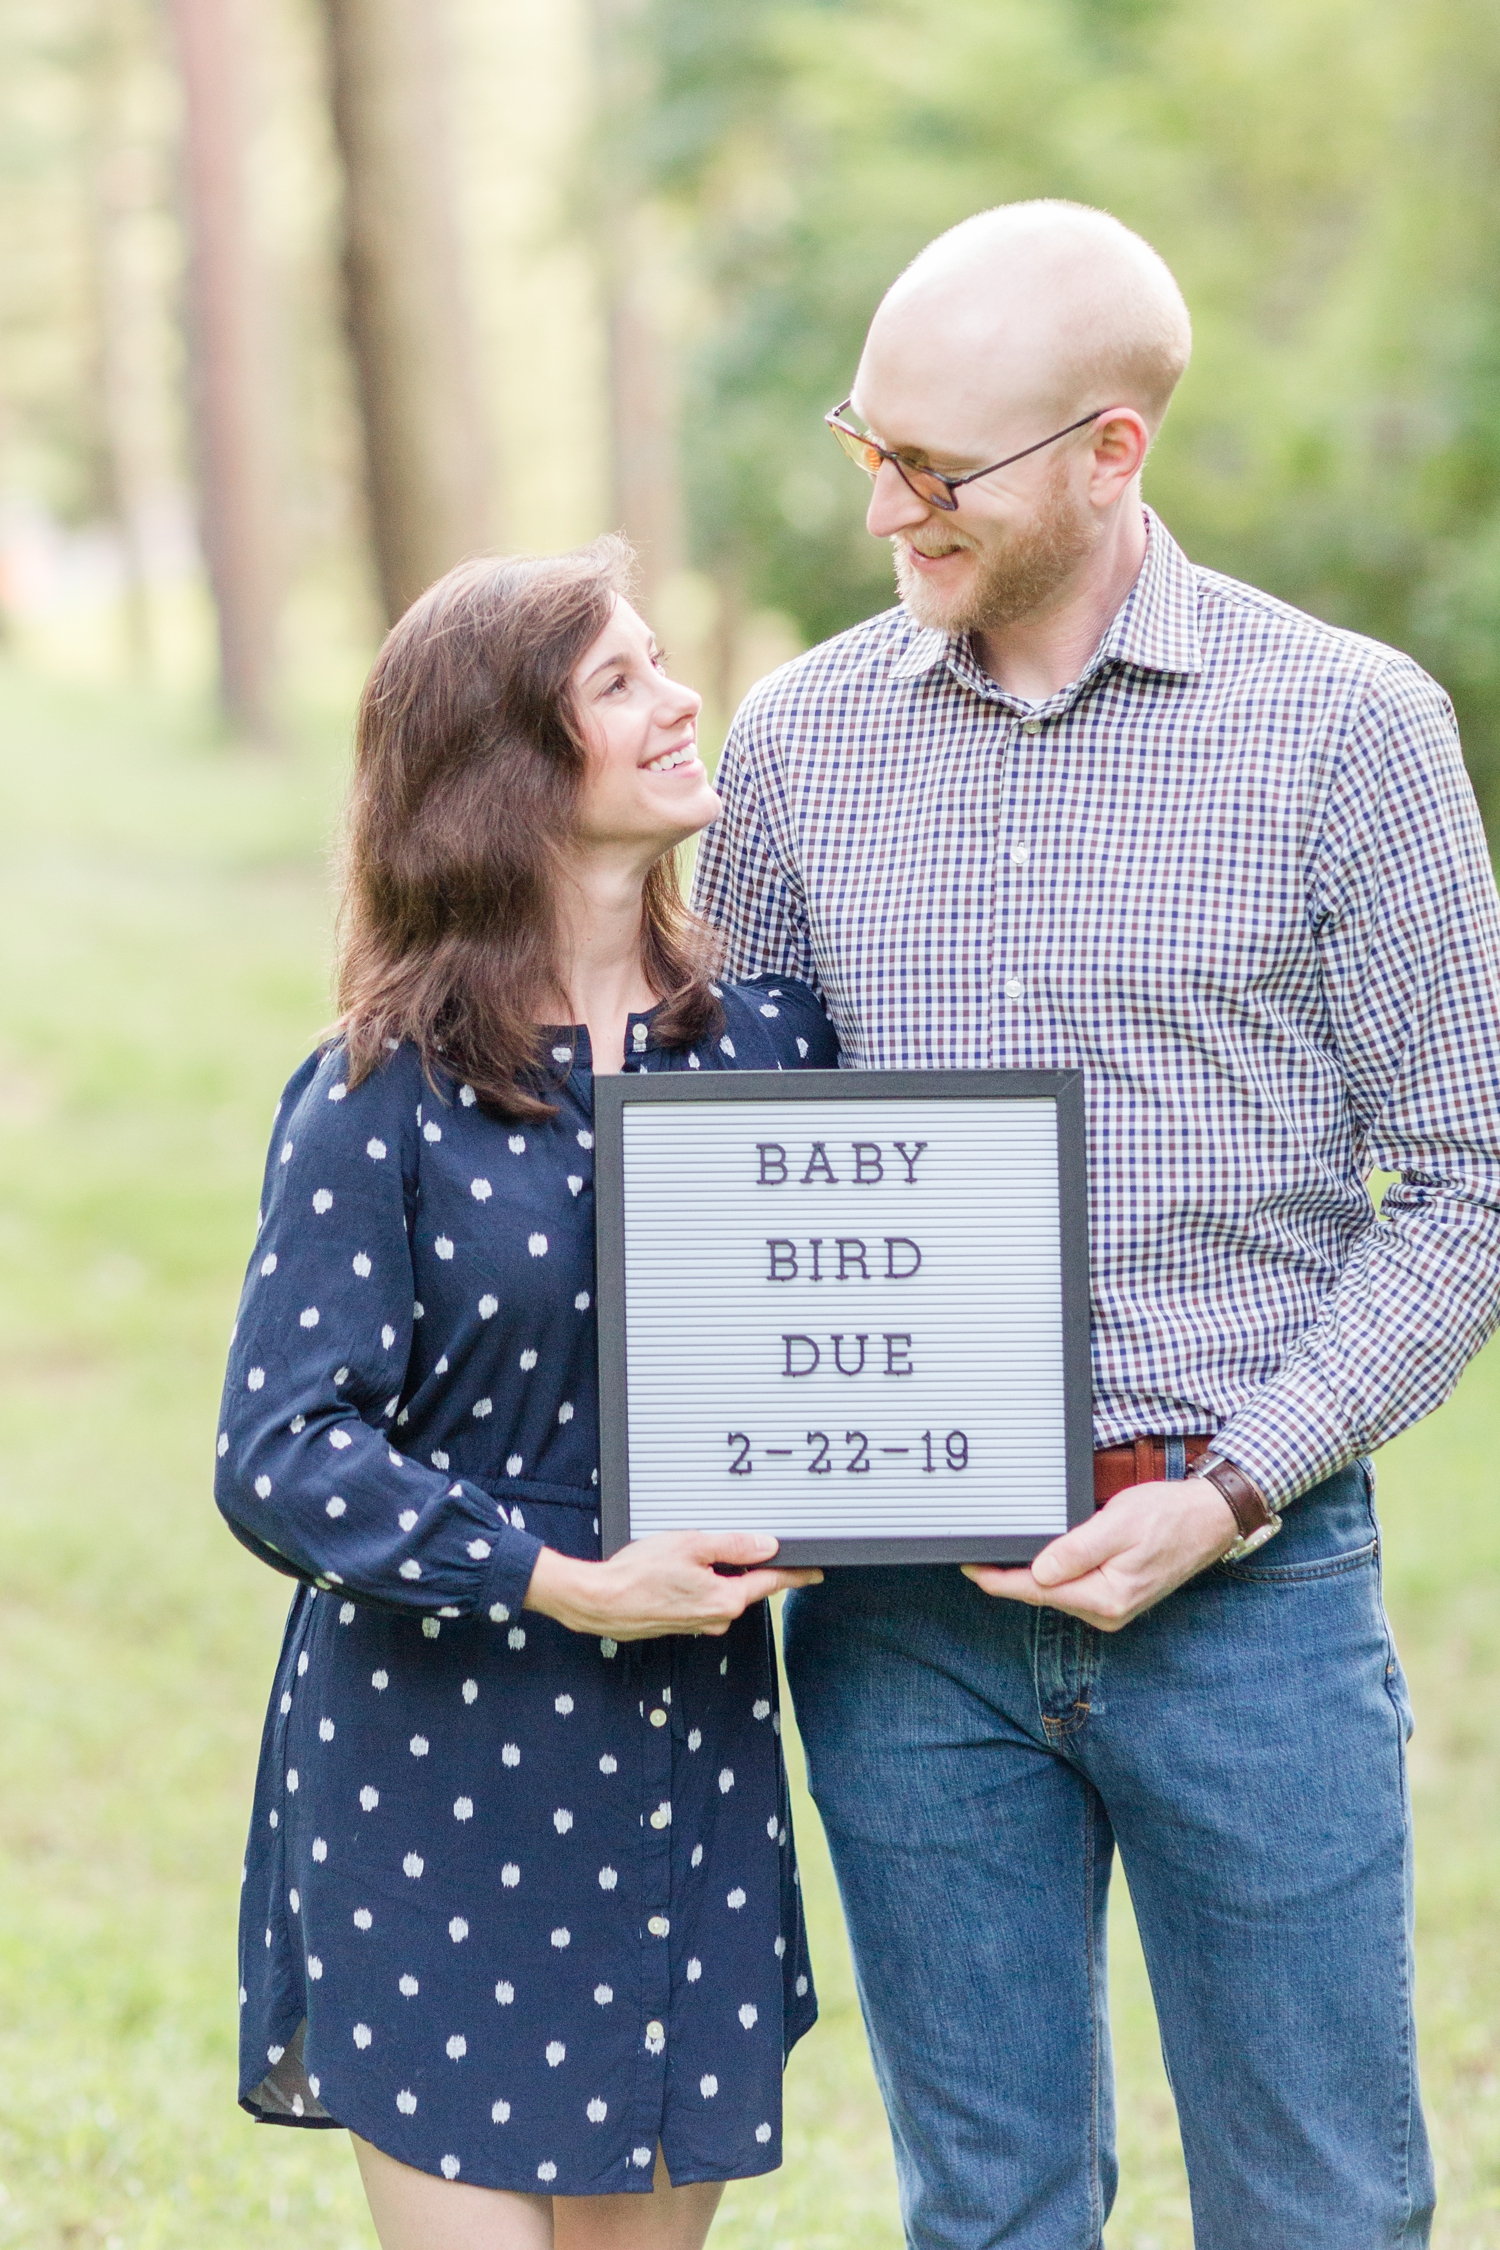 Bird Family 2018-83_Loch-Raven-Reservoir-Anniversary-Pregnancy-Reveal-Photographer-anna-grace-photography-photo.jpg